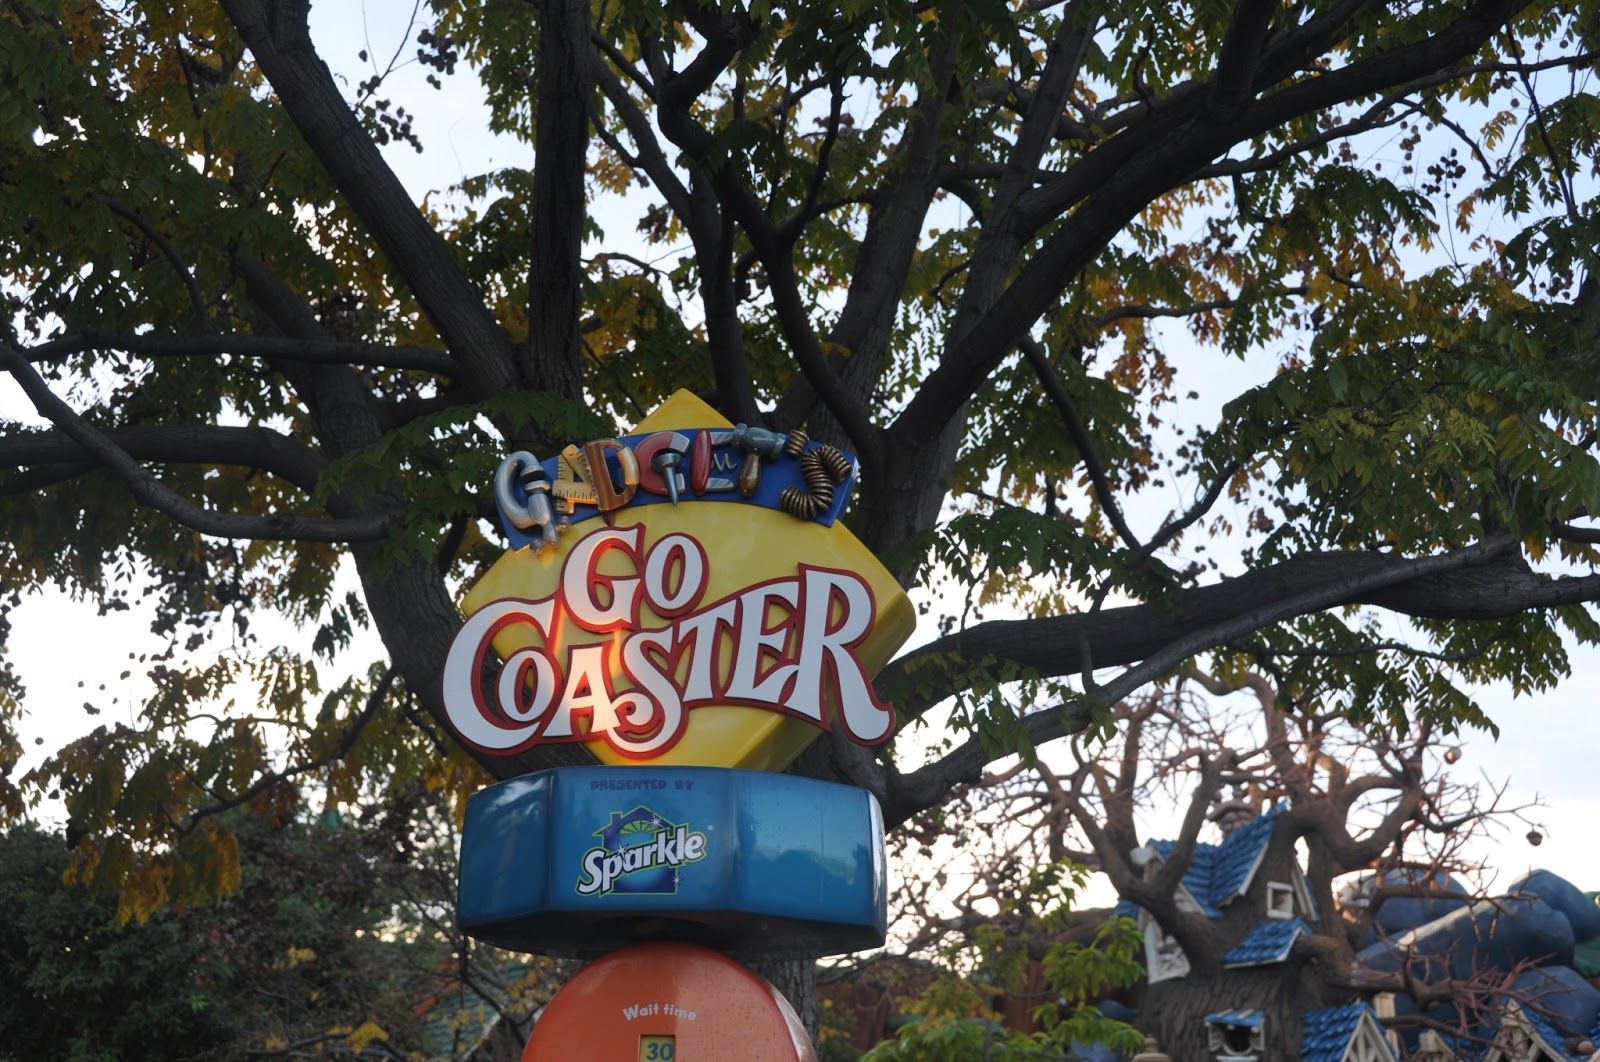 Disney, Disneyland, Disney fan, Disney lover, magical kingdom, what to do at Disneyland, Disney fashion, Disney apparel, Disney food, Disney food review, mickey mouse ears, where to eat at Disneyland, fashion blog, fashion blogger, style blog, style blogger, mens fashion, mens fashion blog, mens style, mens style blog, womens style blog, anthropologie ootd blog, anthropologie ootd, anthropologie, ootd, mens ootd, womens ootd,